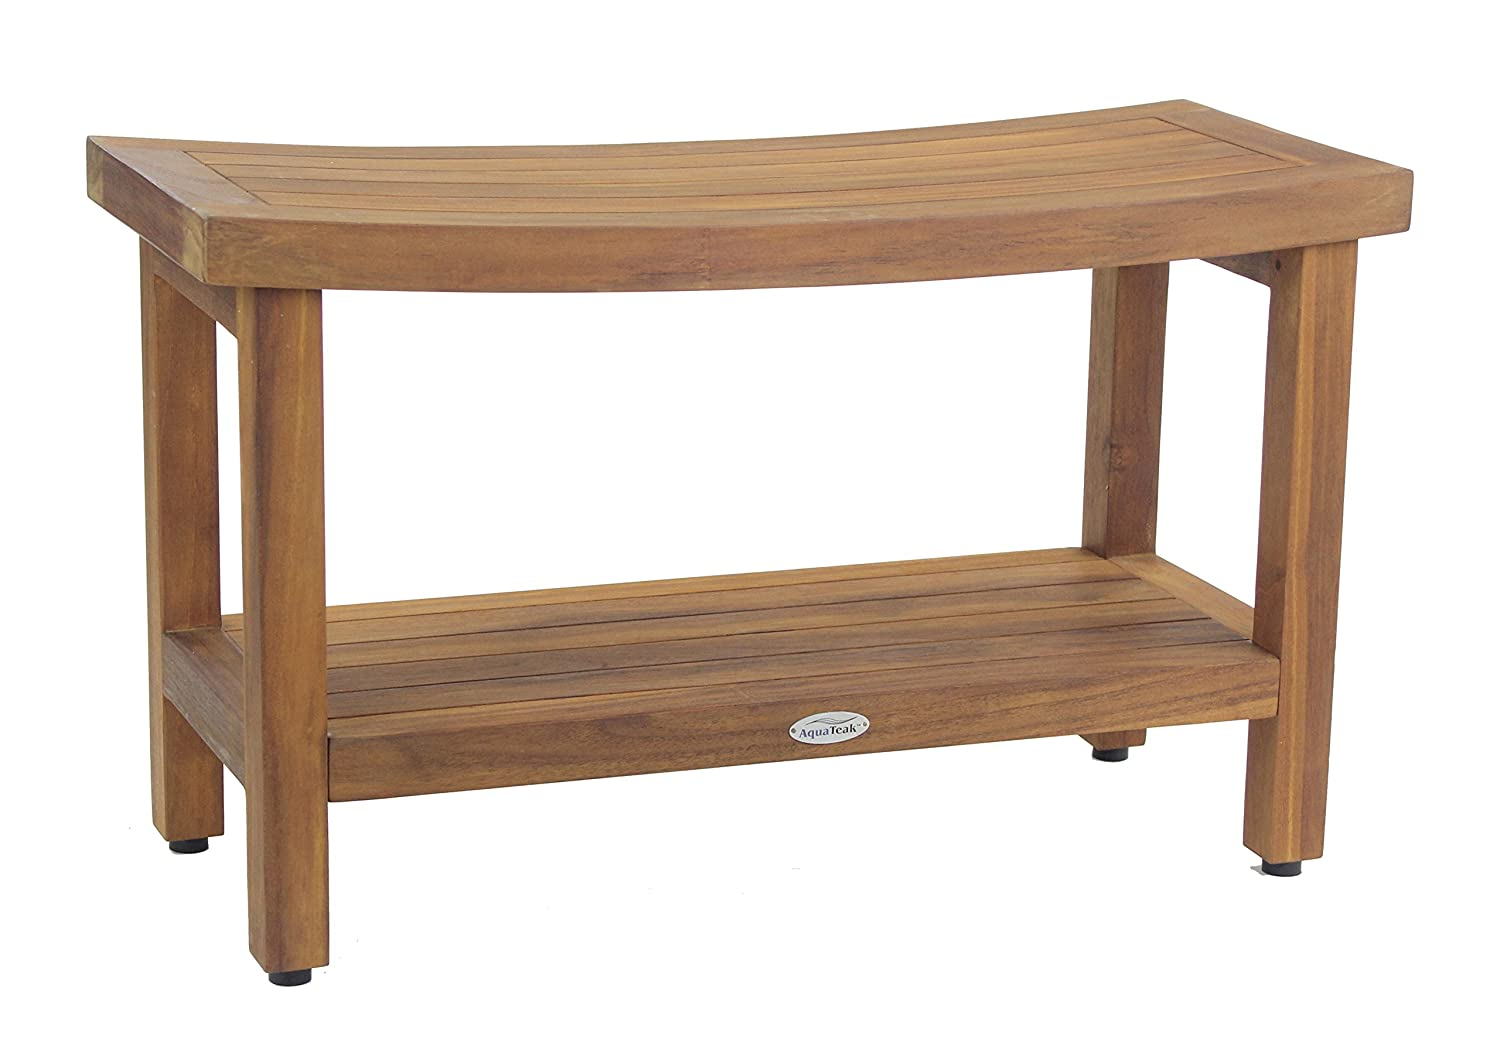 Park Bench Walmart Amazoncom Benches Patio Seating Patio Lawn Garden